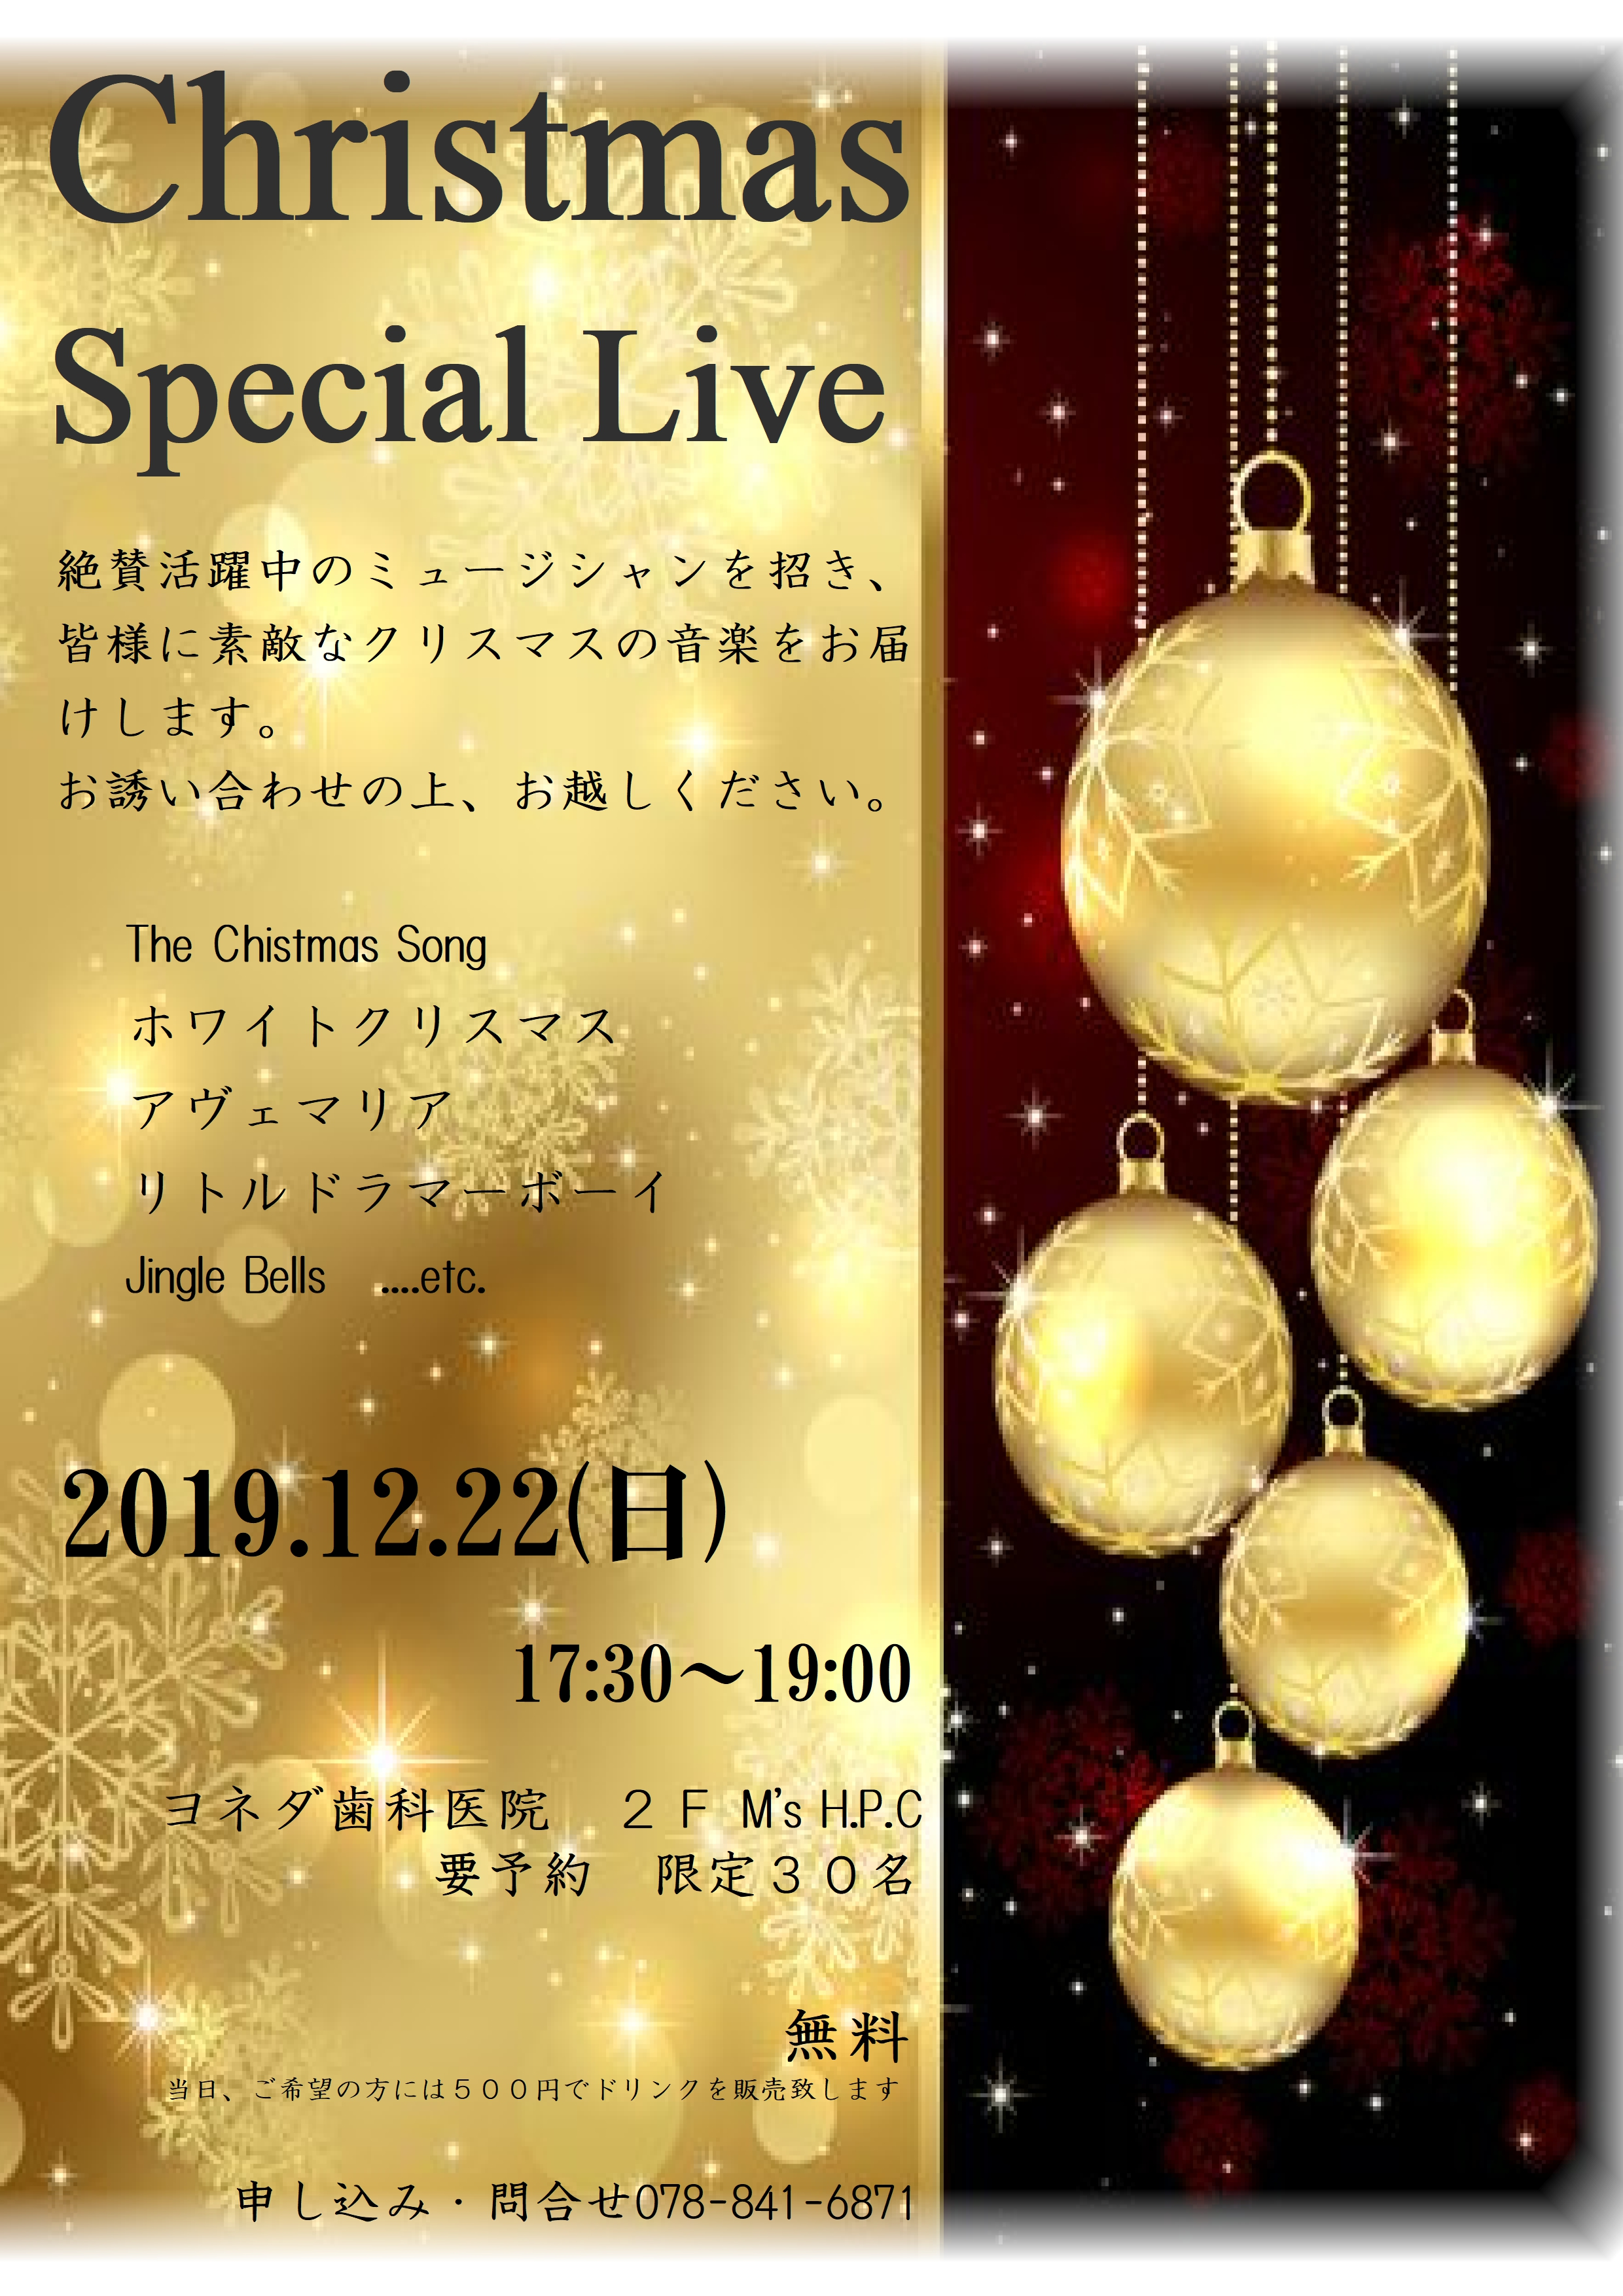 Christmas Special Live | 神戸市東灘区のヨネダ歯科